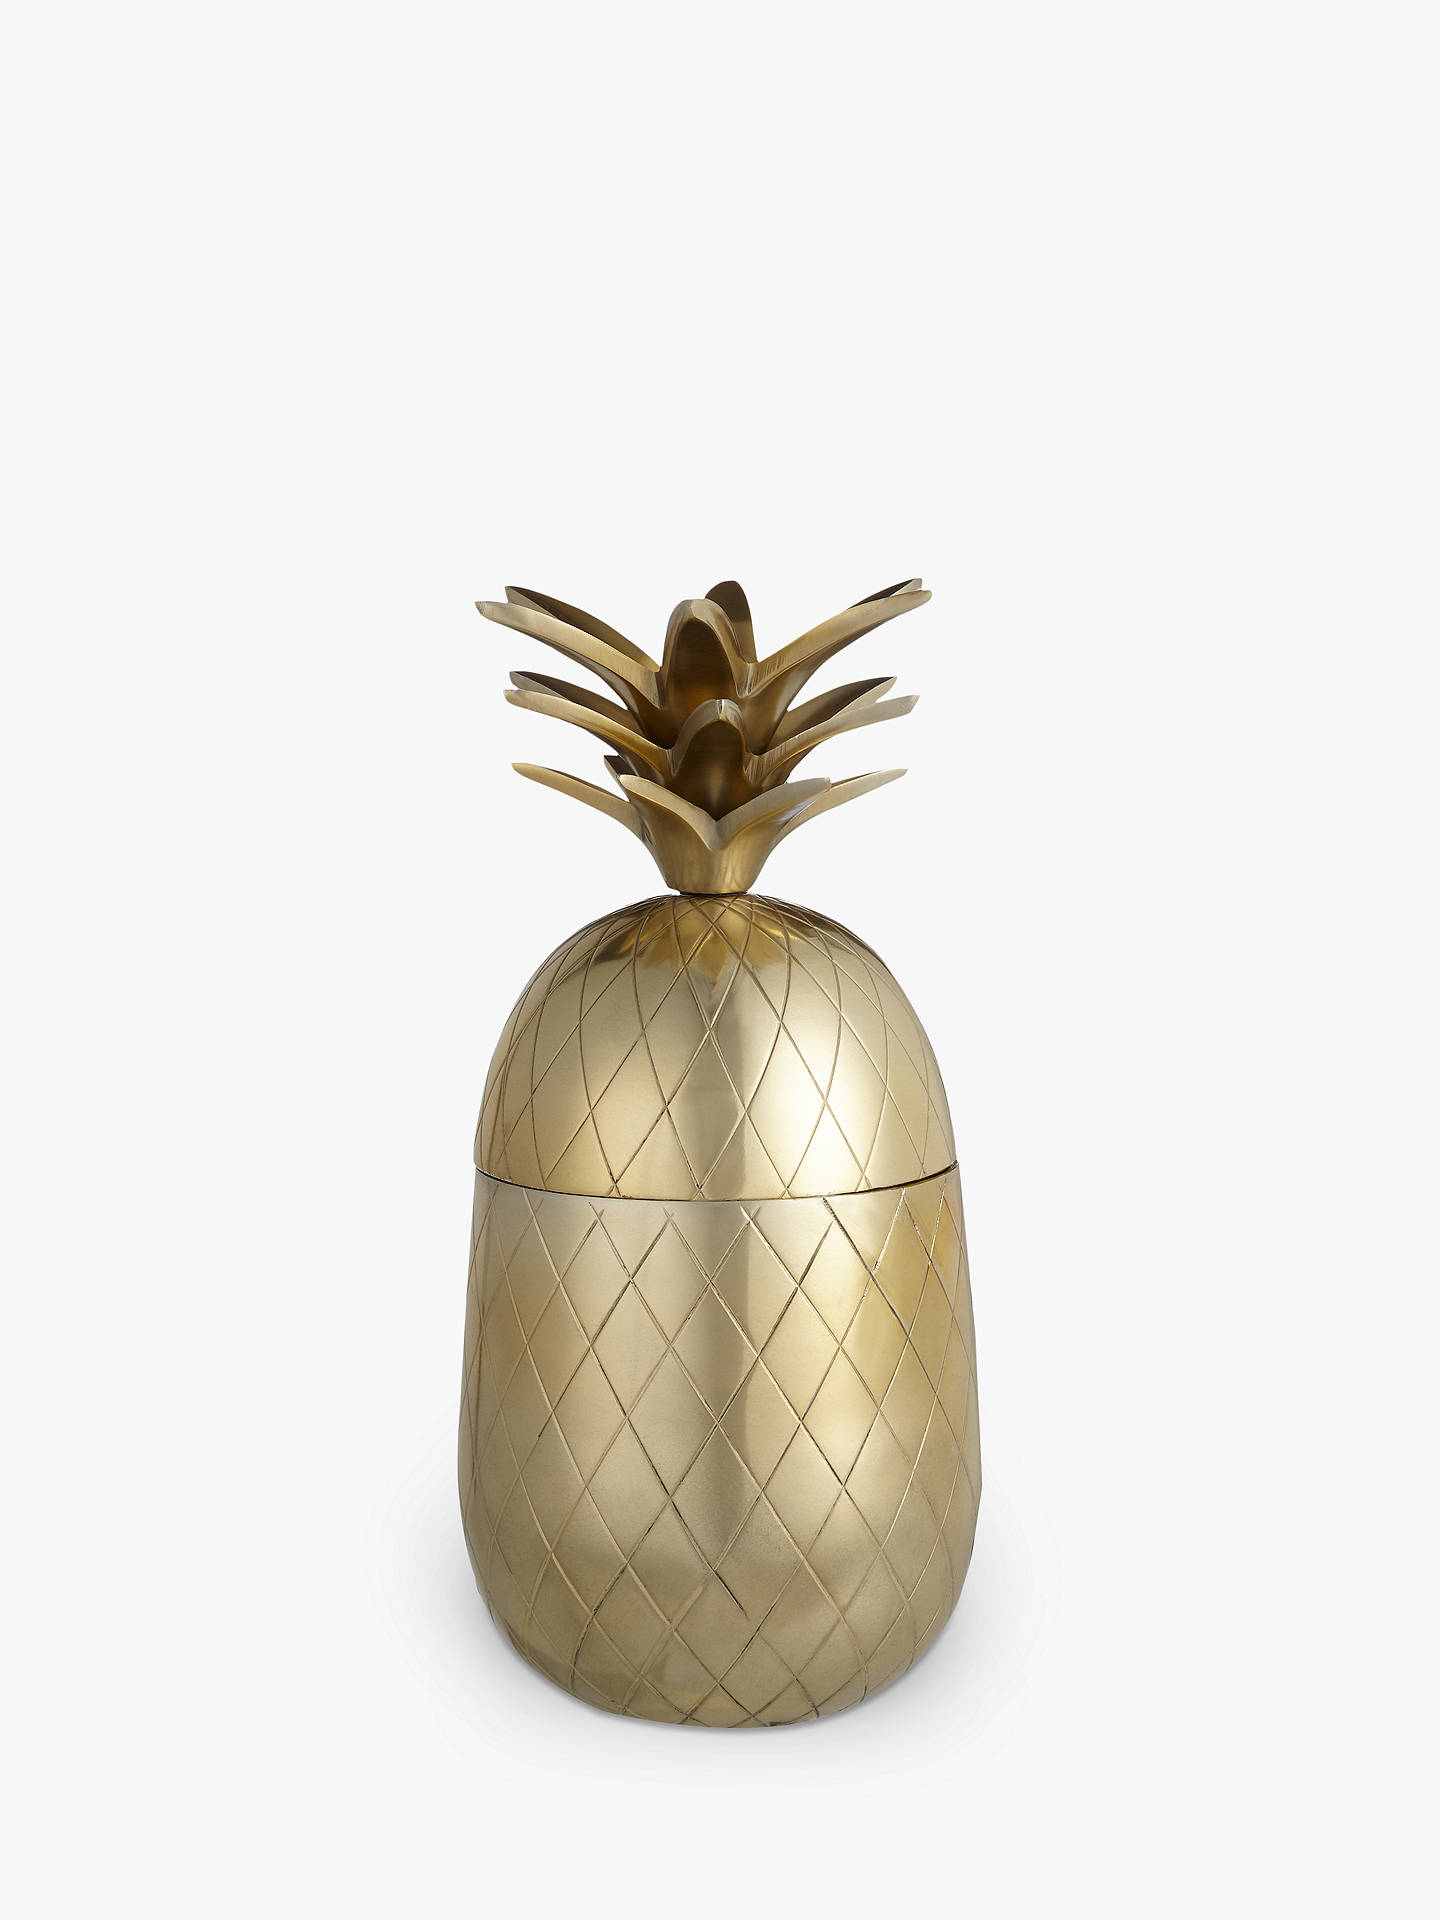 BuyJohn Lewis & Partners Gold Pineapple, Large Online at johnlewis.com